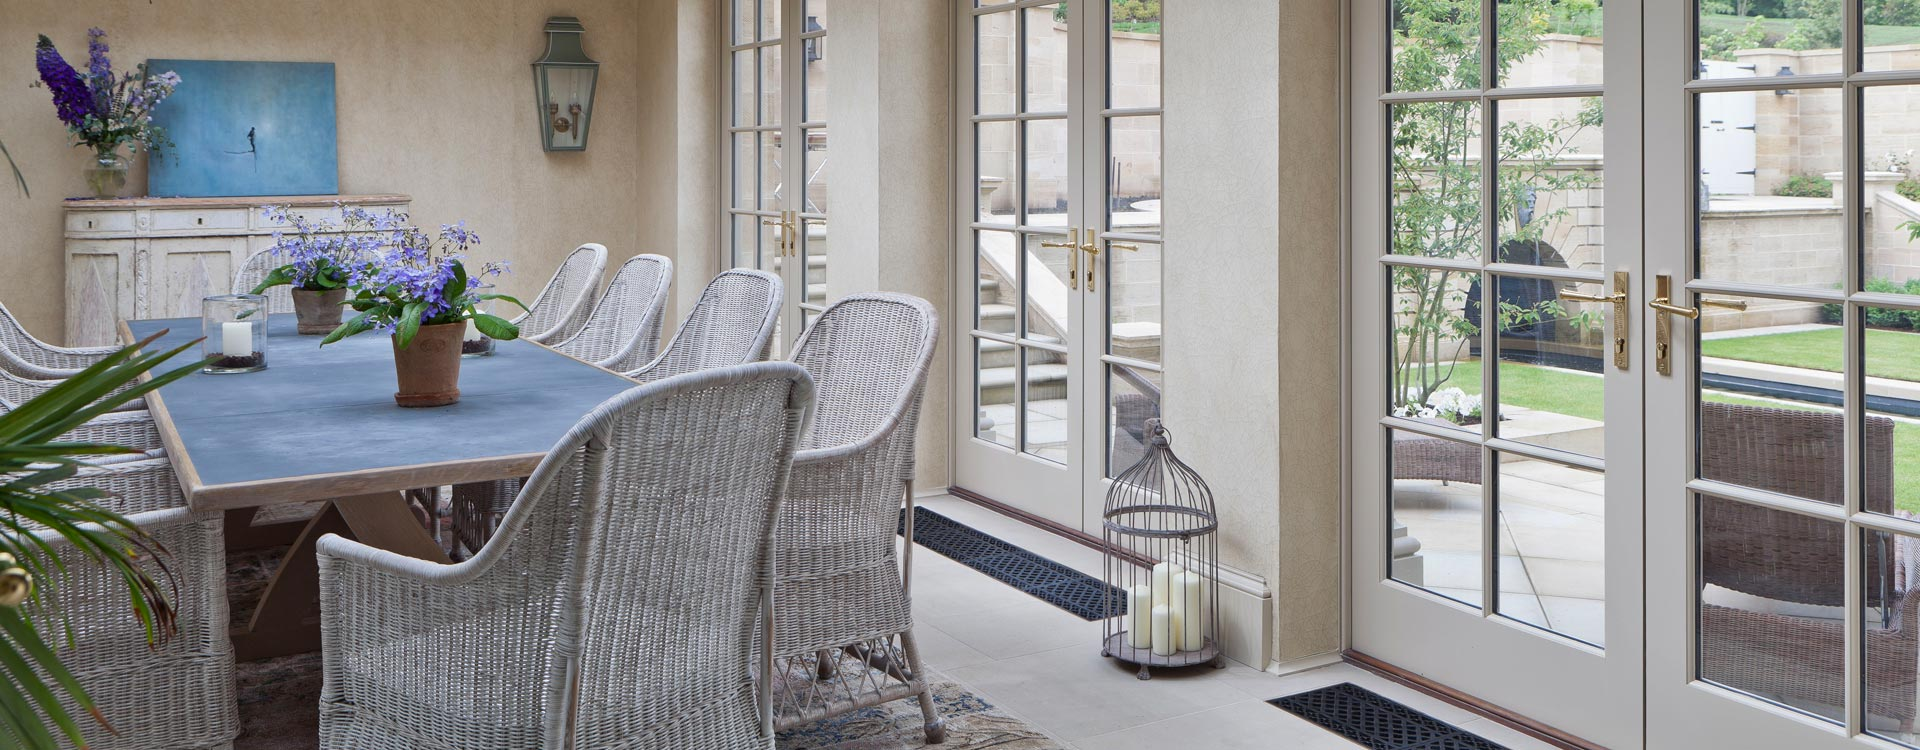 Floor Grilles in an orangery